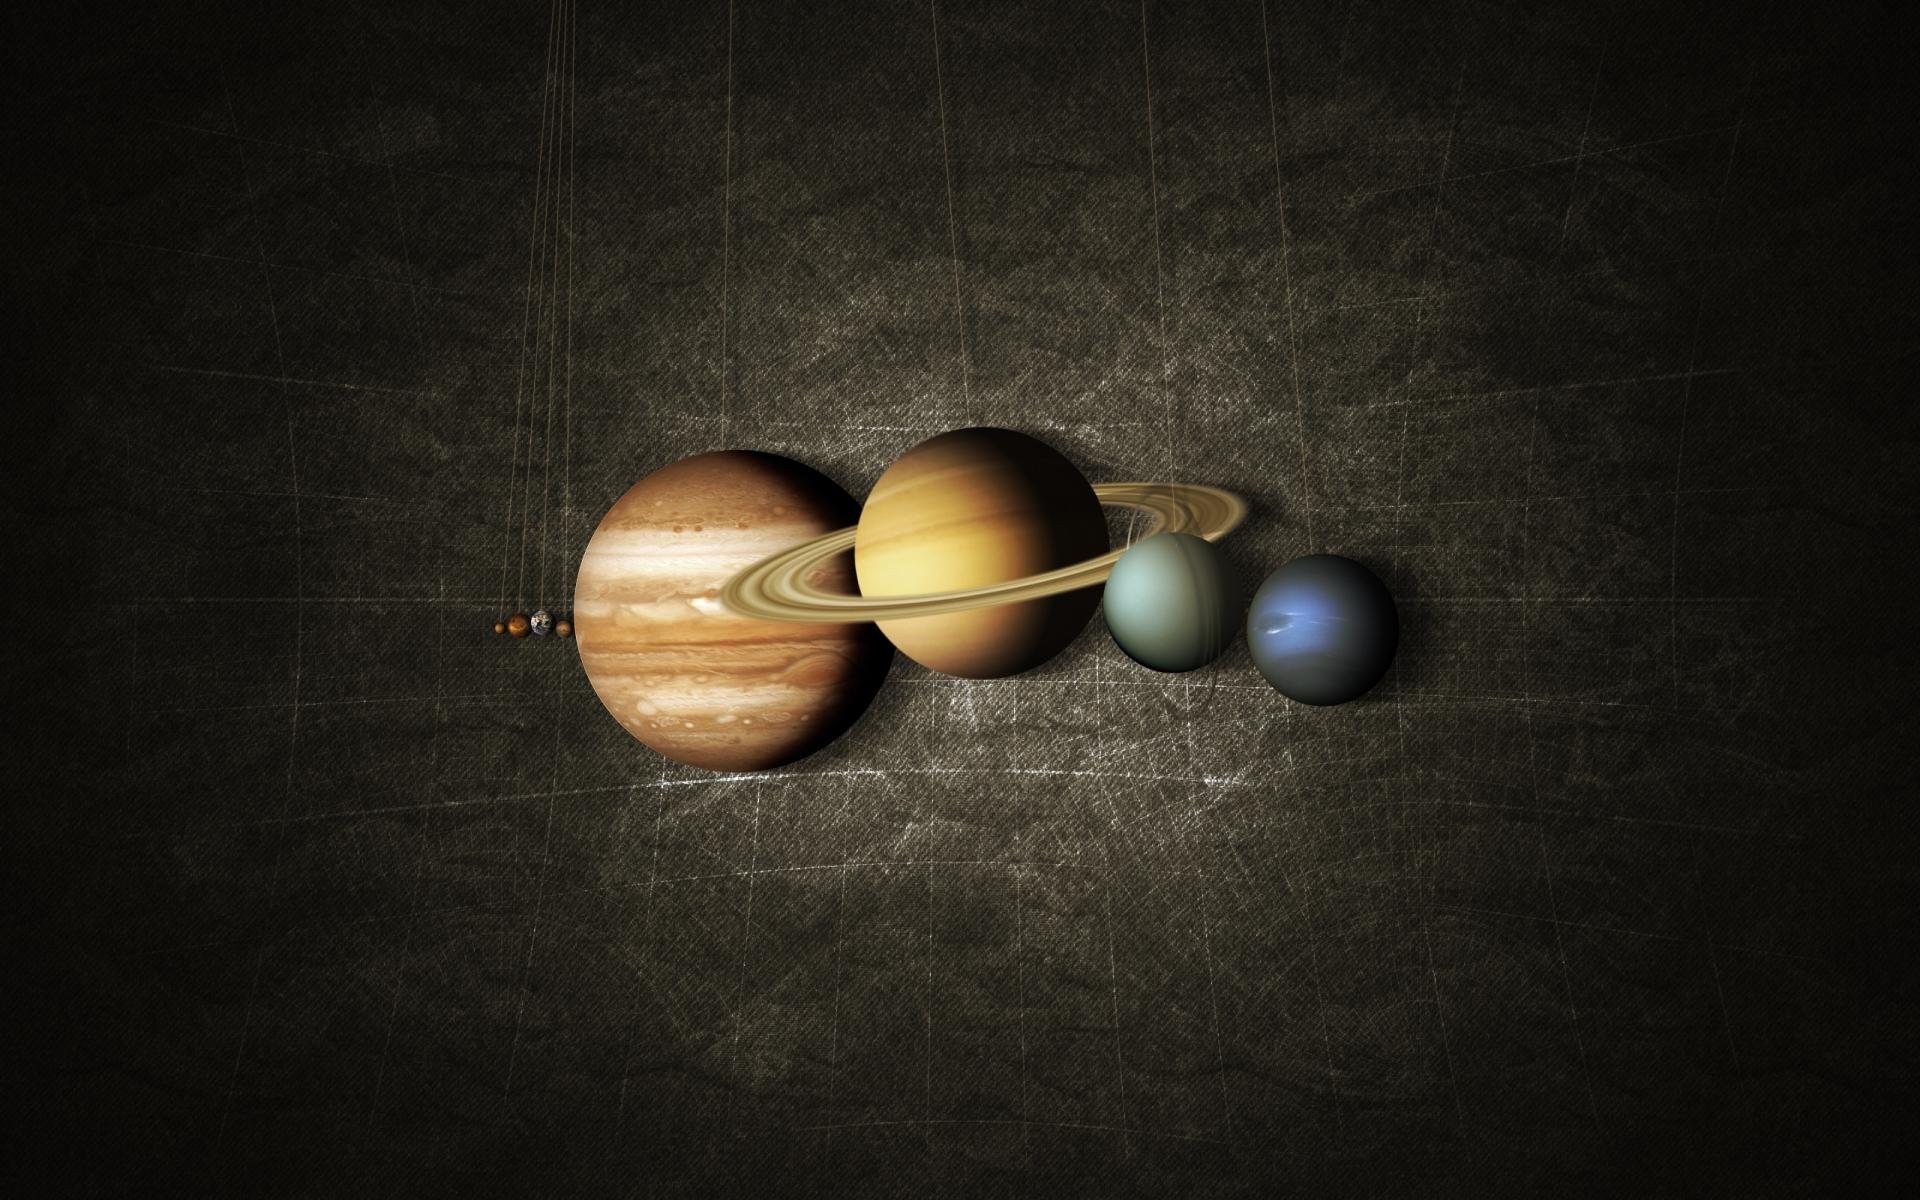 Planets Artistic wallpapers HD quality